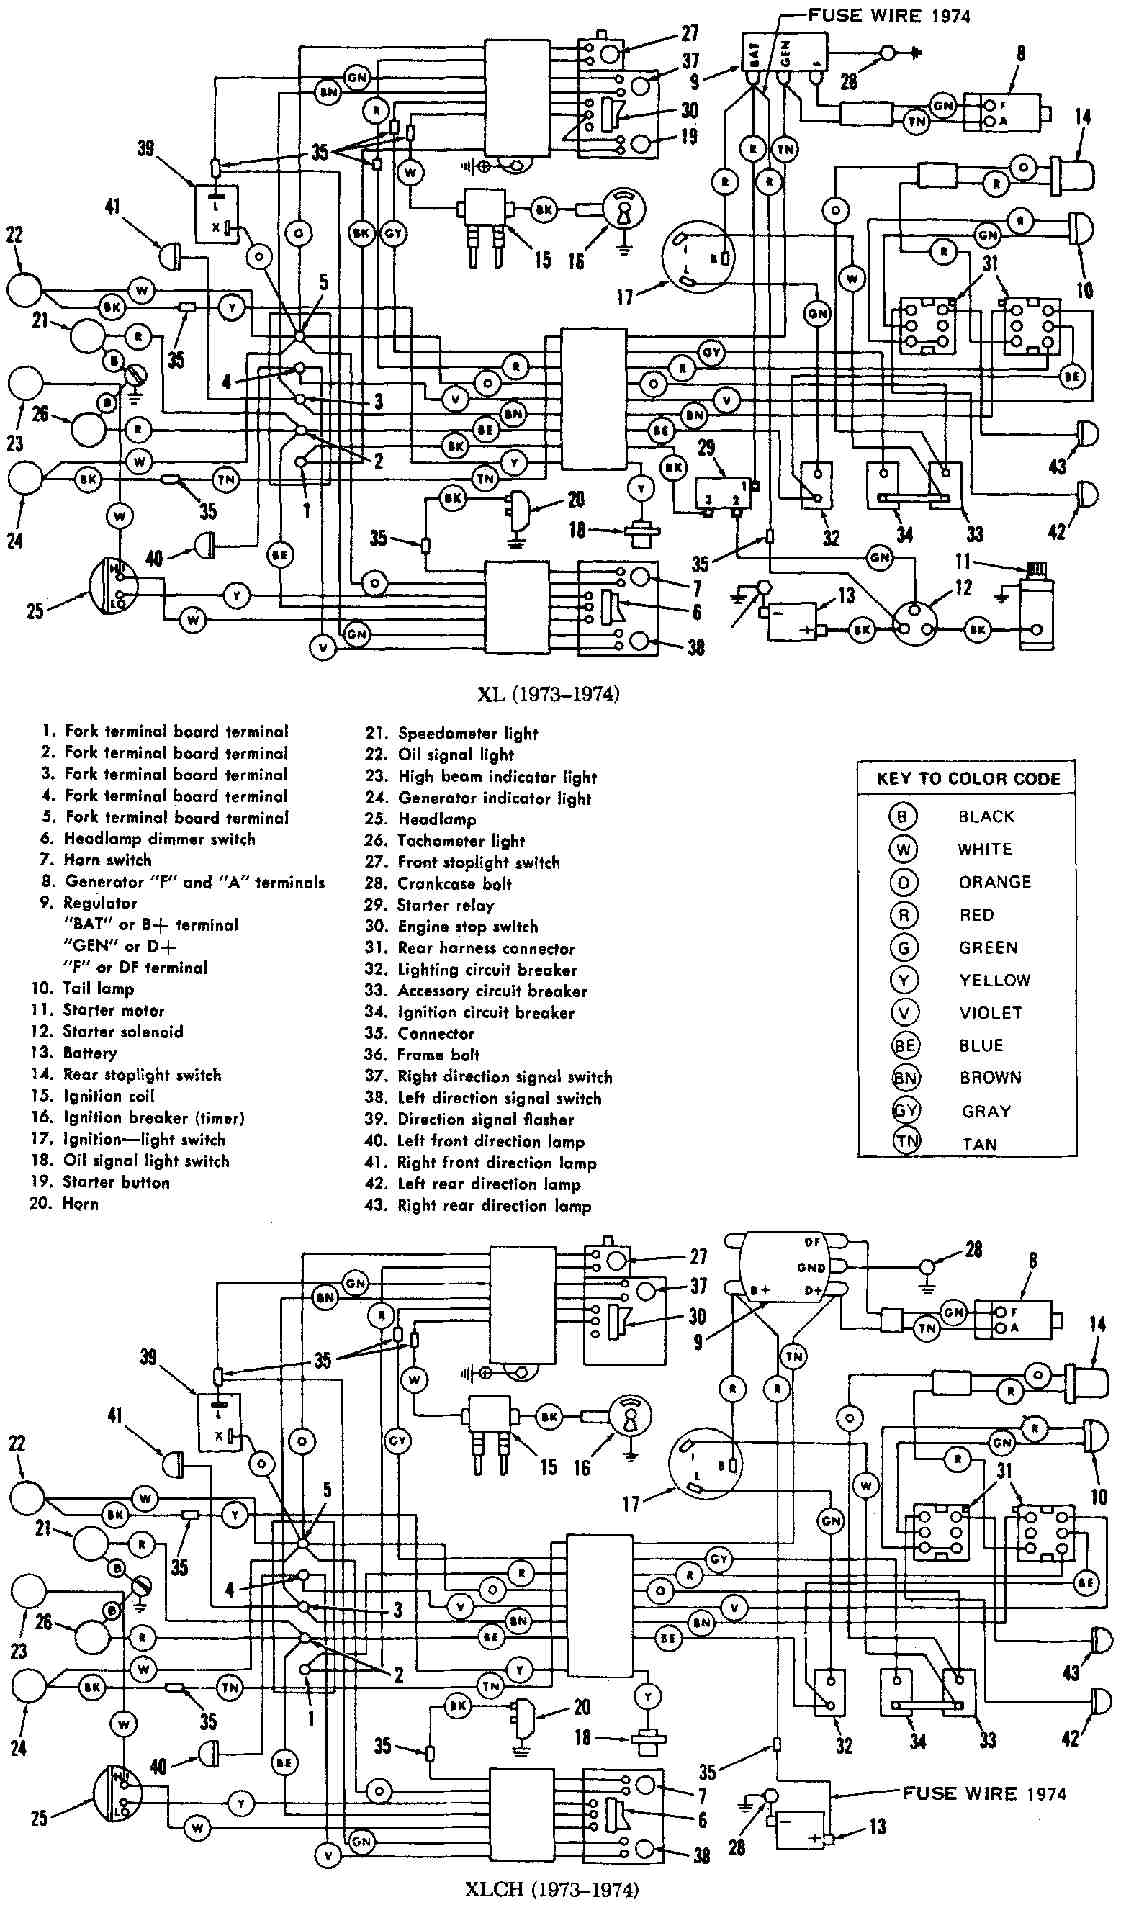 small resolution of 1972 harley davidson wiring diagram simple wiring schema harley davidson drivetrain diagram 1972 harley davidson wiring diagram